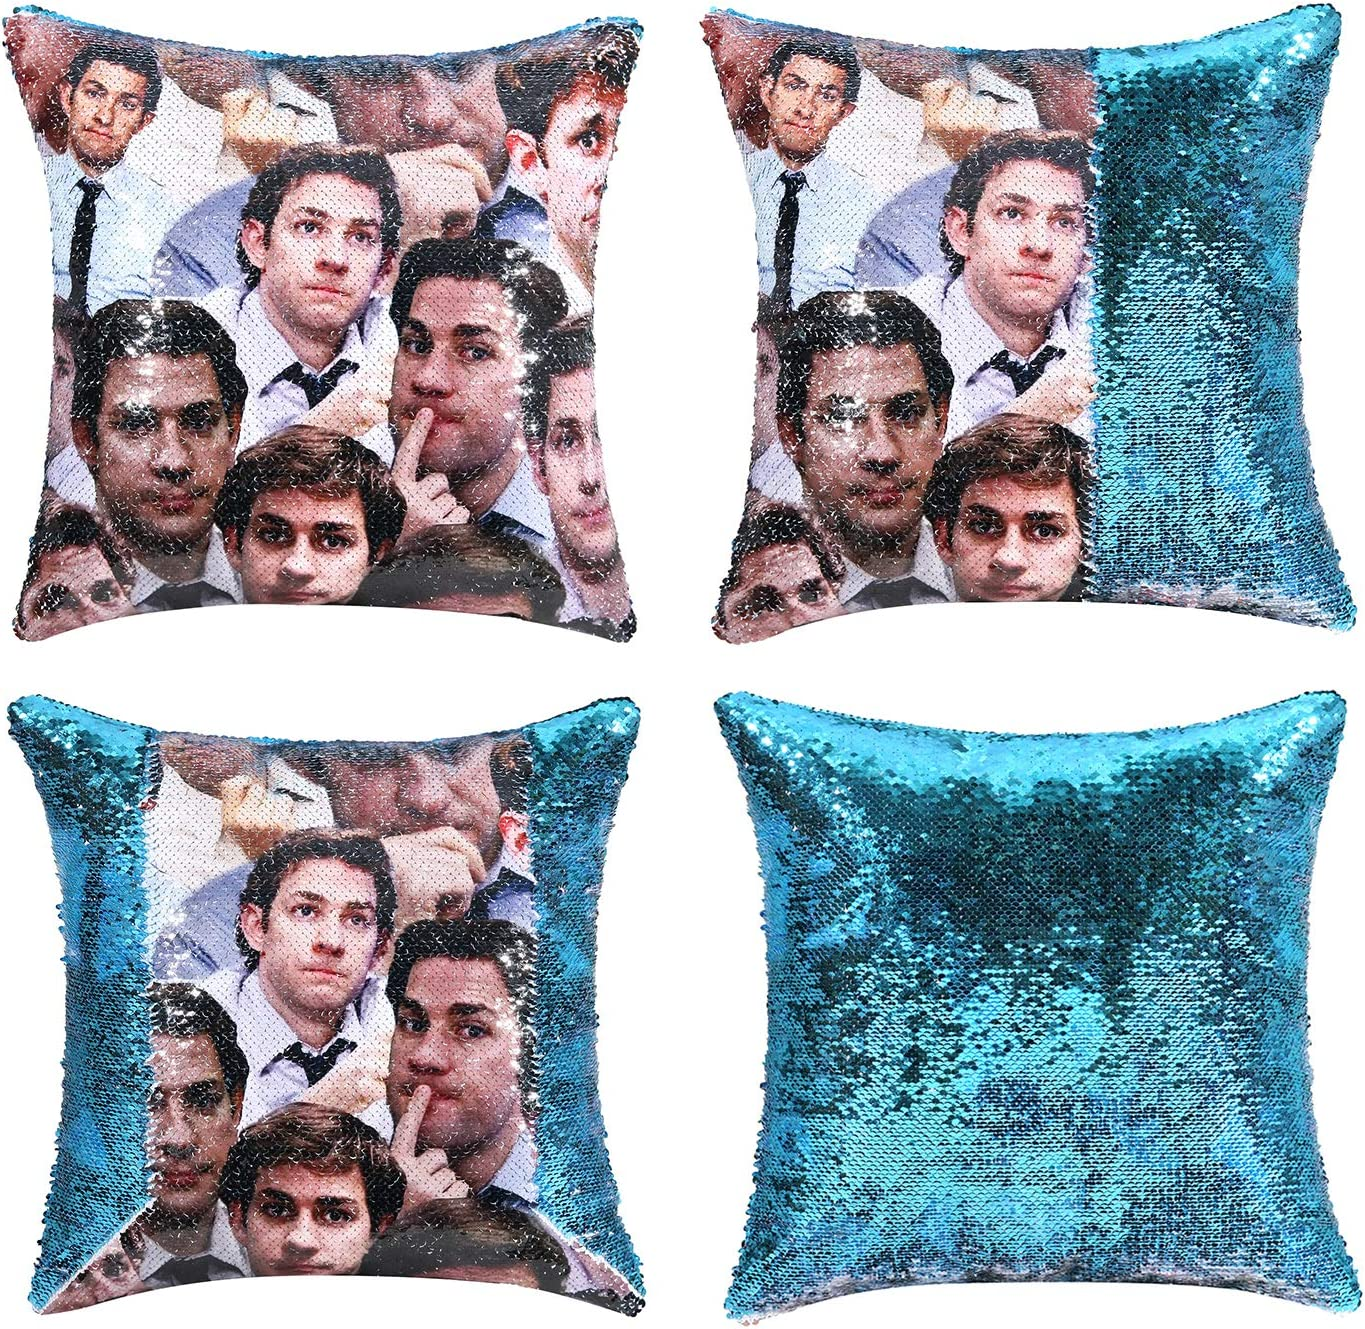 cygnus The Office Jim Halpert Sequin Pillow Cover Reversible Magic Mermaid Throw Pillow Case That Color Changes 16x16 inch,Blue